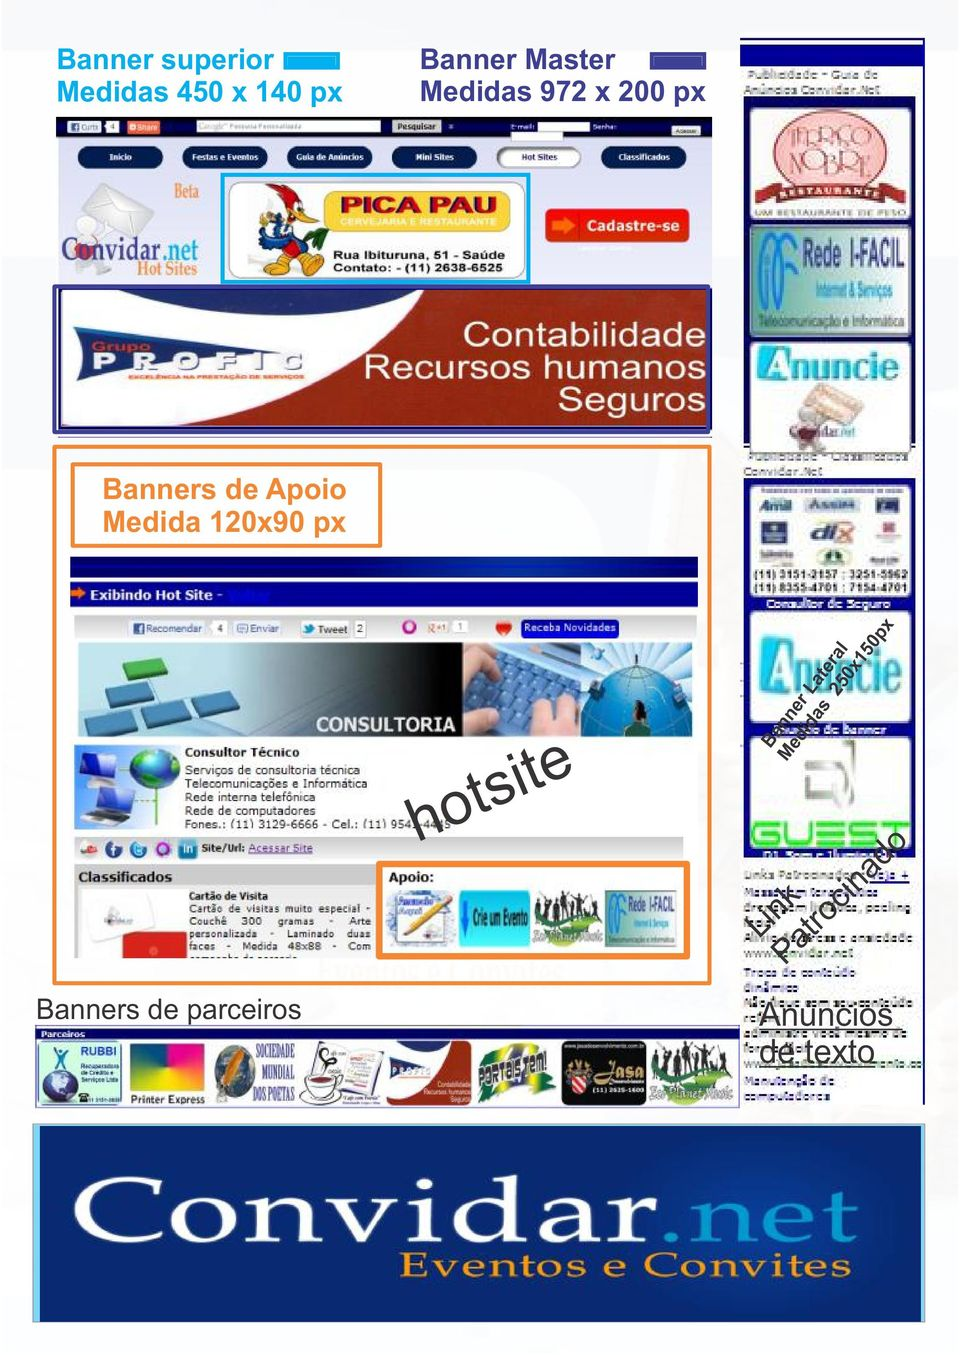 120x90 px hotsite Banner Lateral Medidas 250x150px